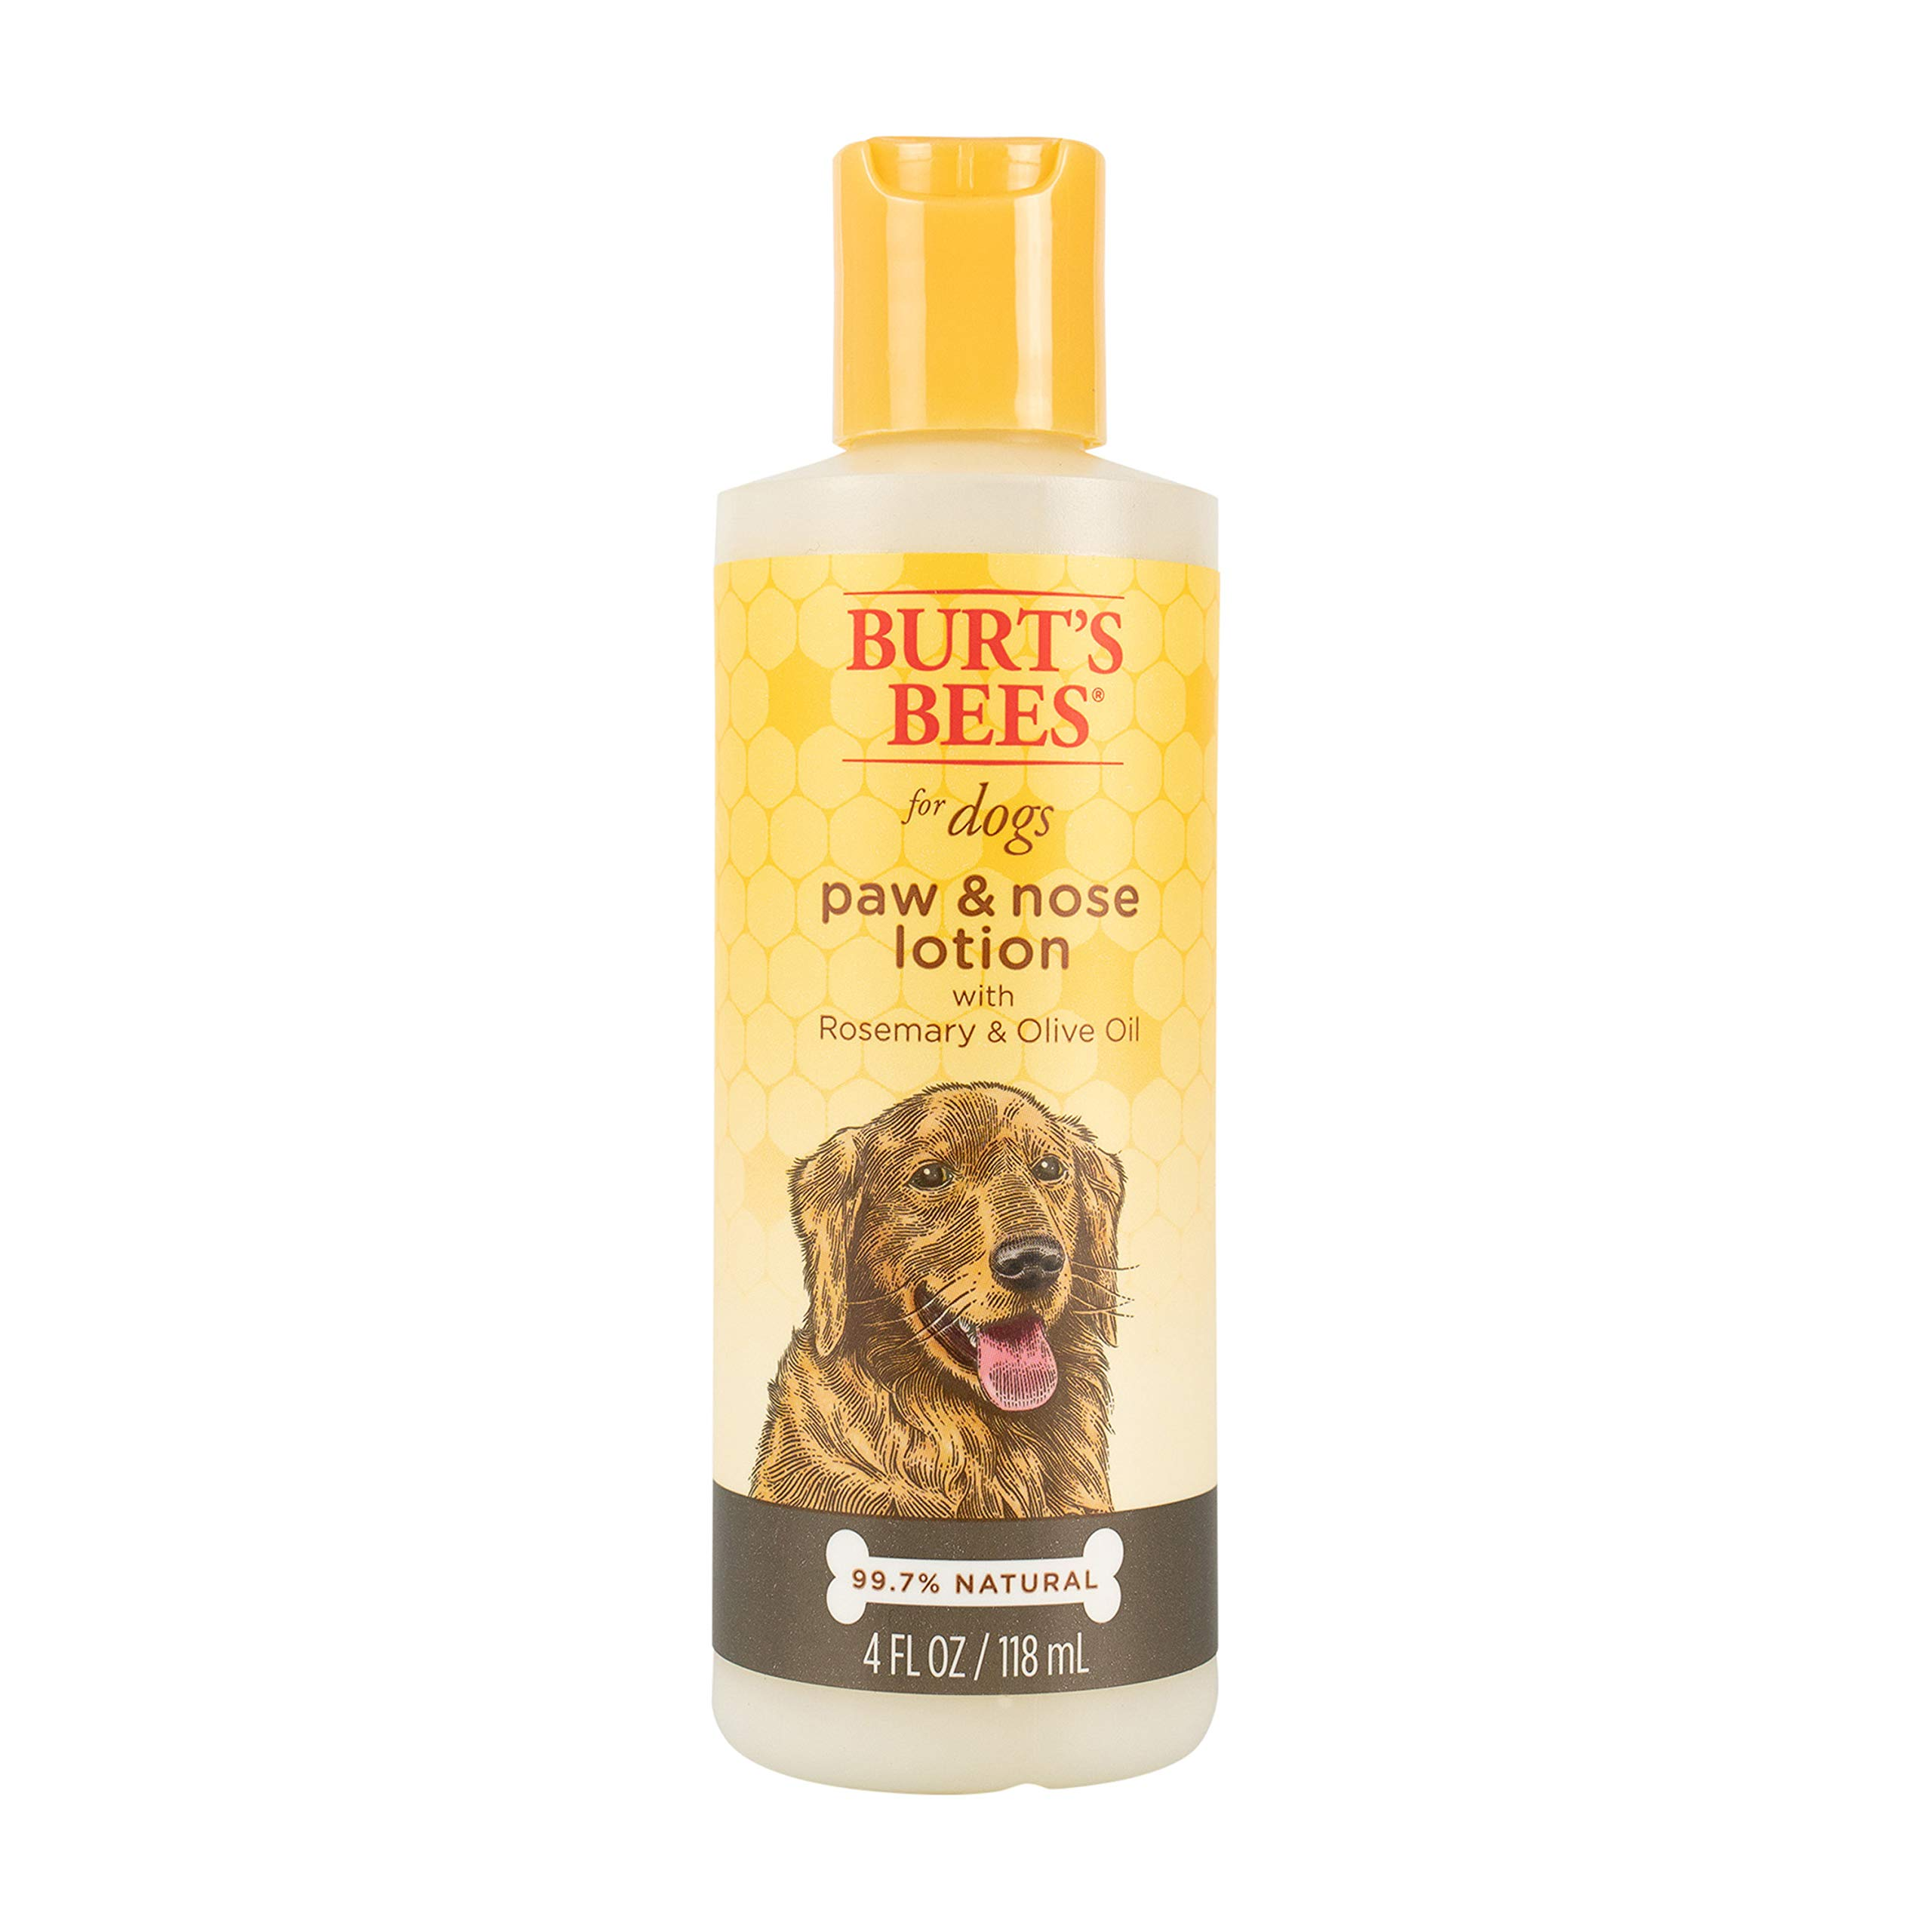 Burt's Bees for Dogs All-Natural Paw & Nose Lotion with Rosemary & Olive Oil   Dog Product For All Dogs and Puppies…